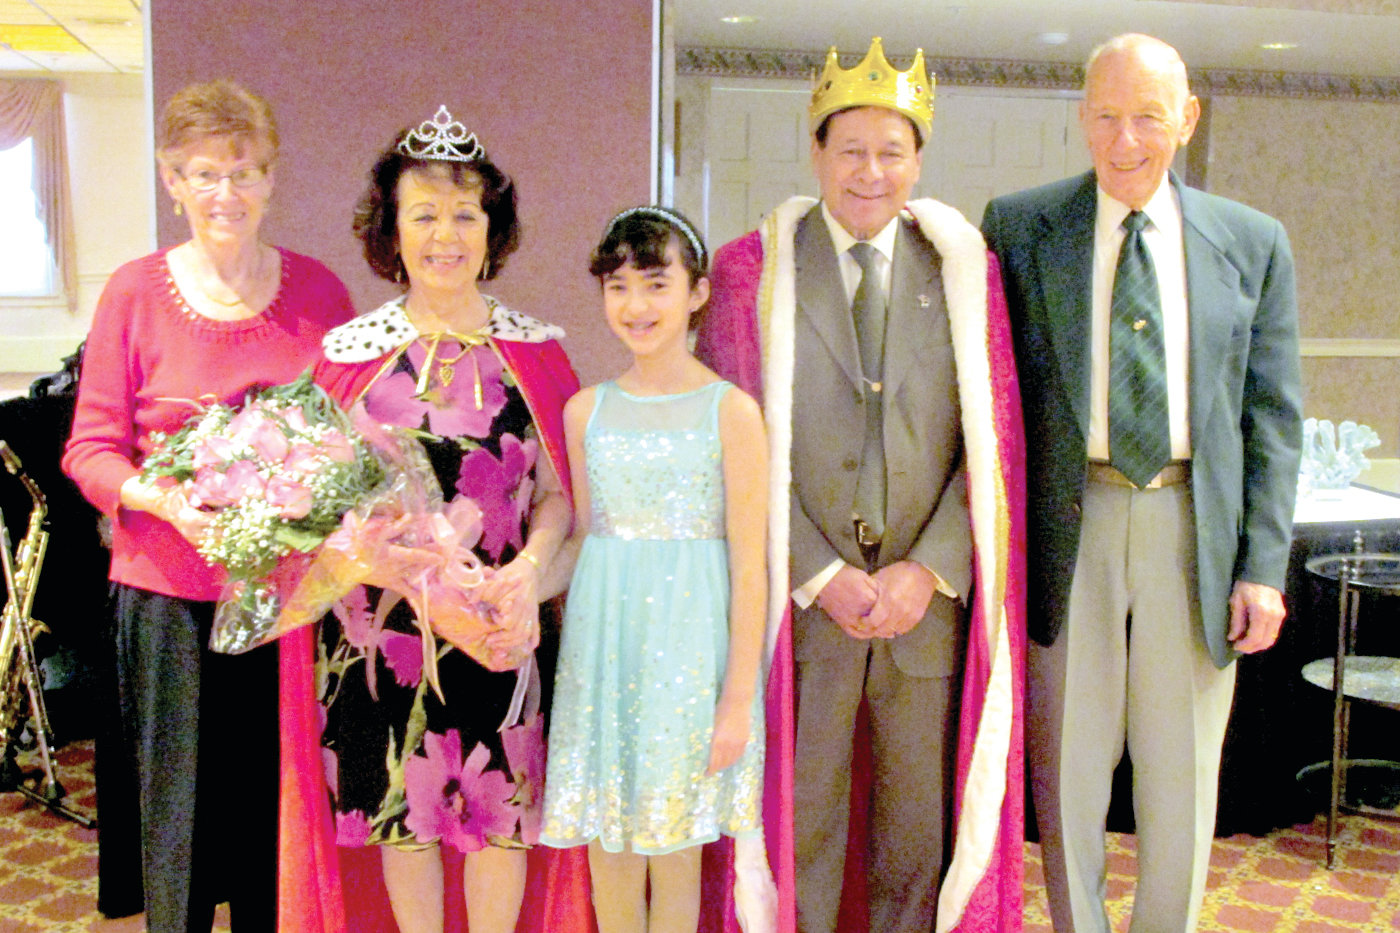 CROWNED COUPLES: Zoila and Manny Guerra, second and fourth from left, respectively, enjoy their royal moment with their granddaughter Daniella after being crowned the Manton Seniors 2018 Queen and King. They're joined by 2017 winners Ann and Bob Gauch.